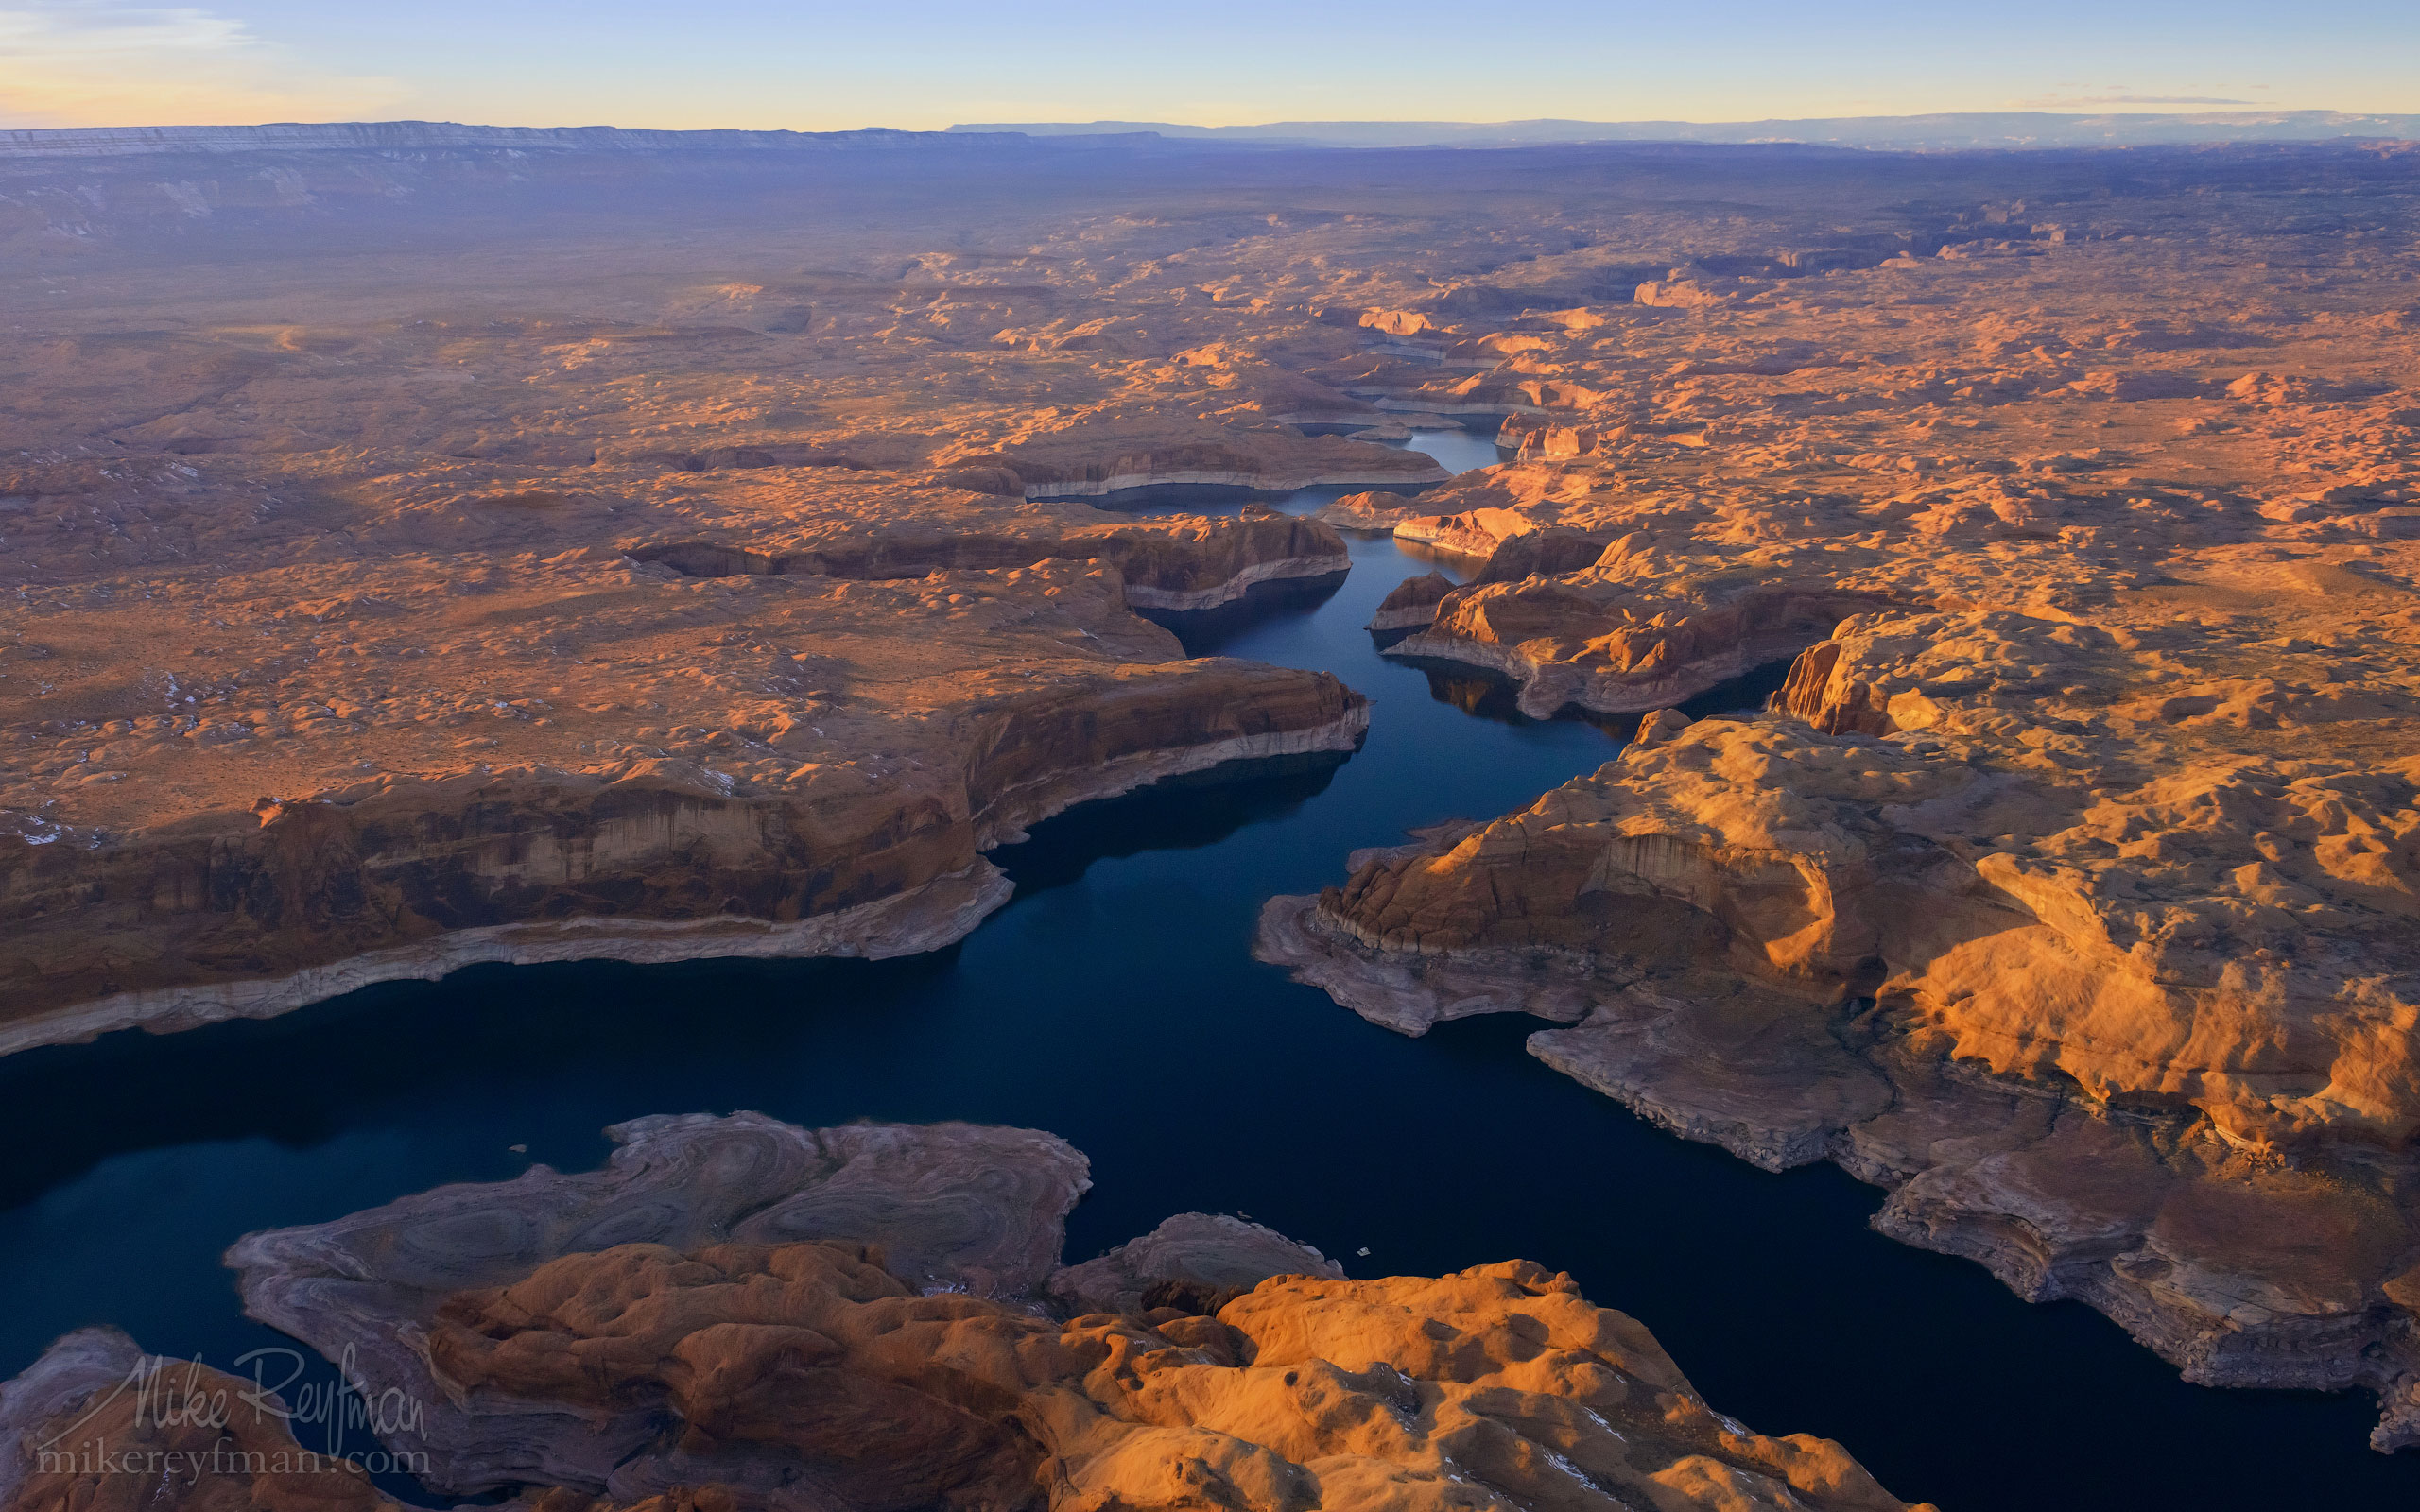 Escalante River Canyon. Lake Powell, Glen Canyon NRA. Uta/Arizona, USA. Aerial. 114-LP3_D8C9575-Escalante-River-Canyon.jpg - Lake Powell, Glen Canyon NAR. Colorado and Sun Juan Rivers. Utah/Arizona, USA  - Mike Reyfman Photography